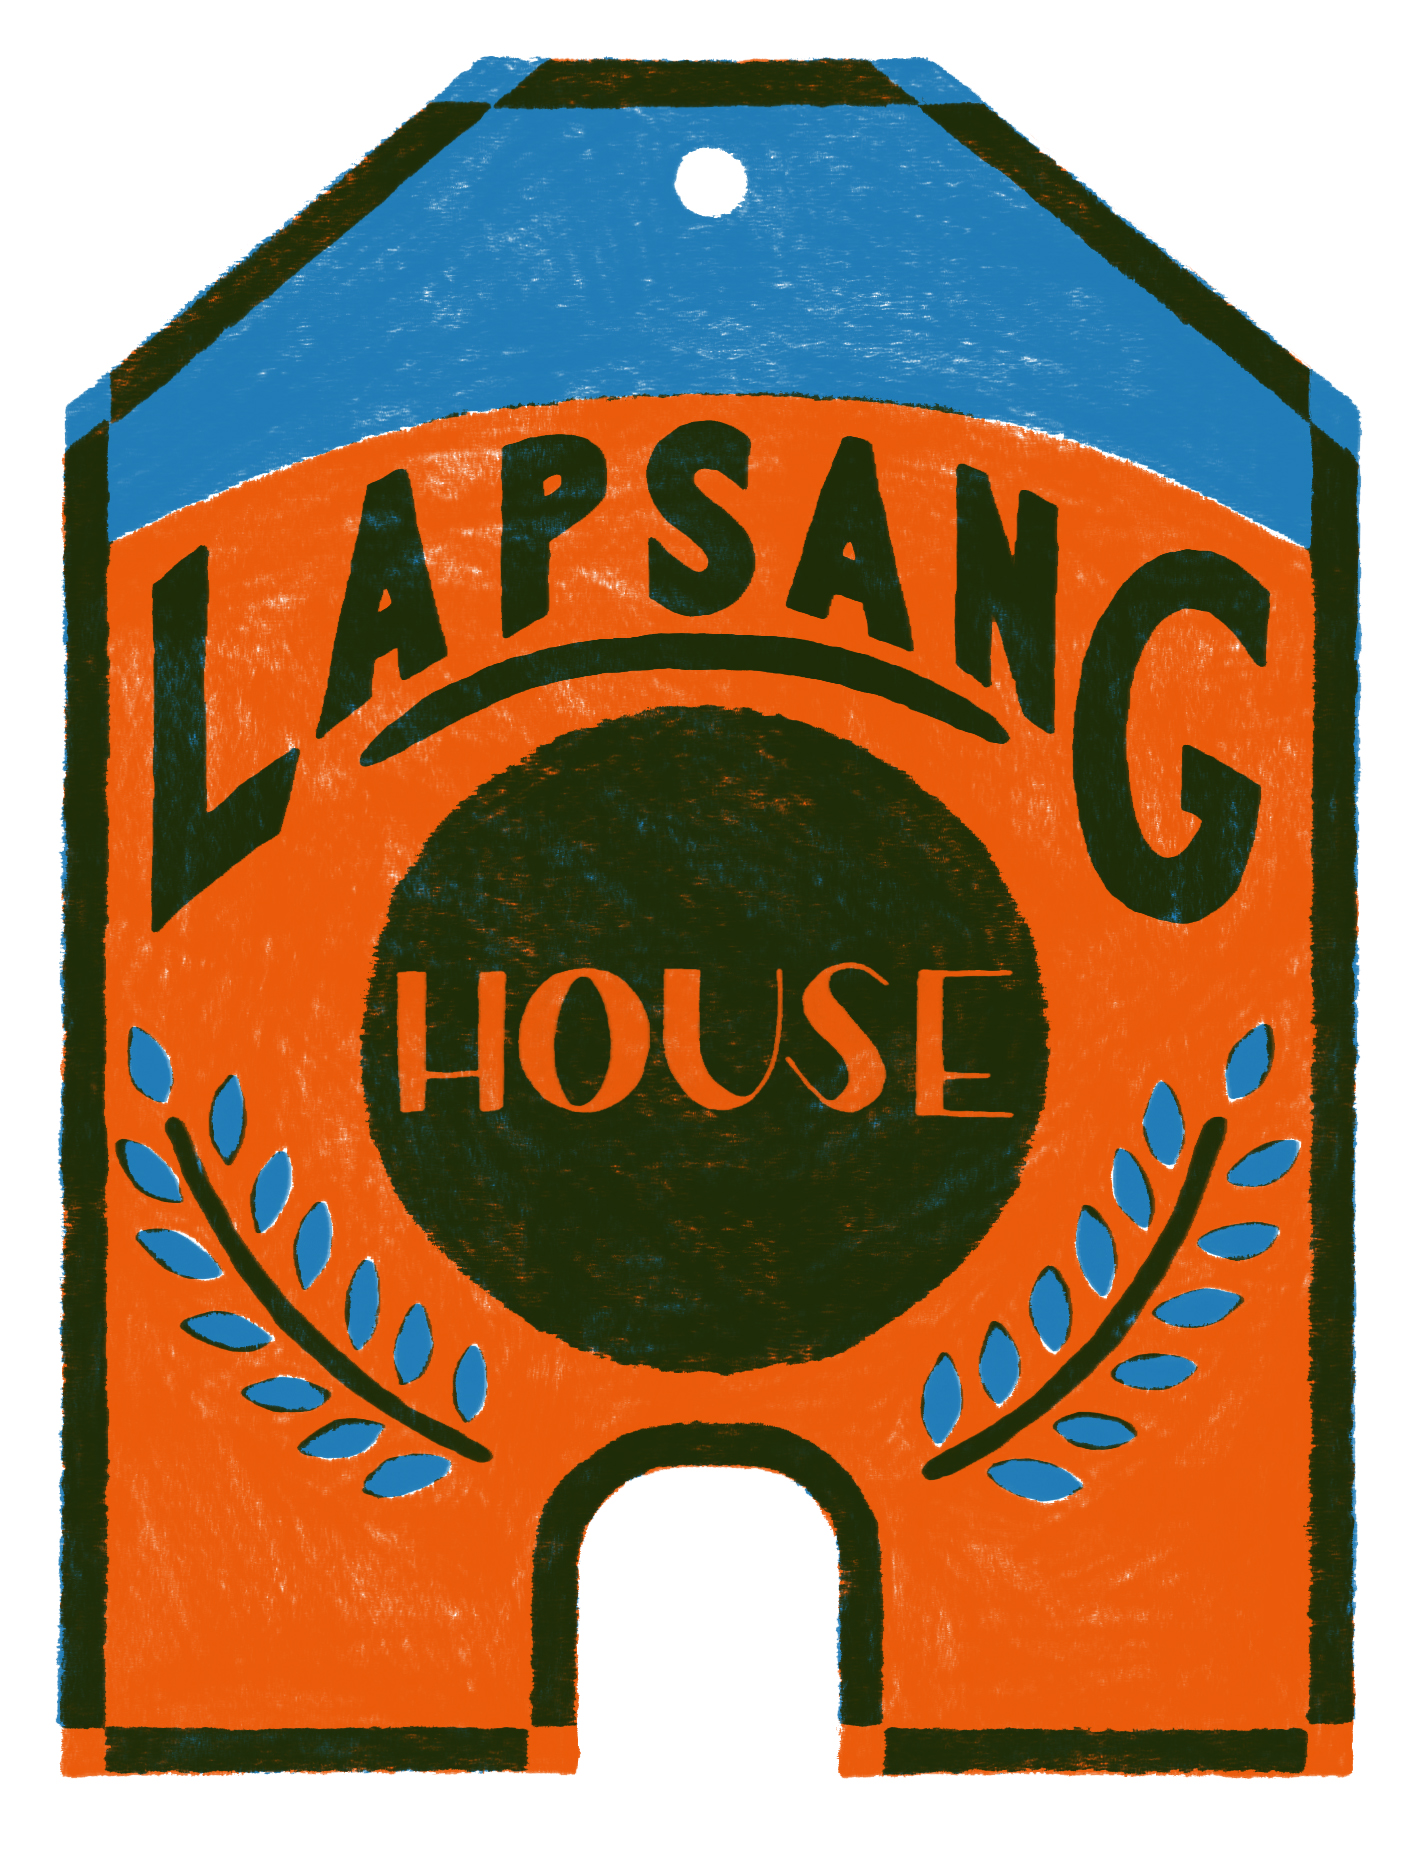 Lapsang House logo_teal and orange.jpg